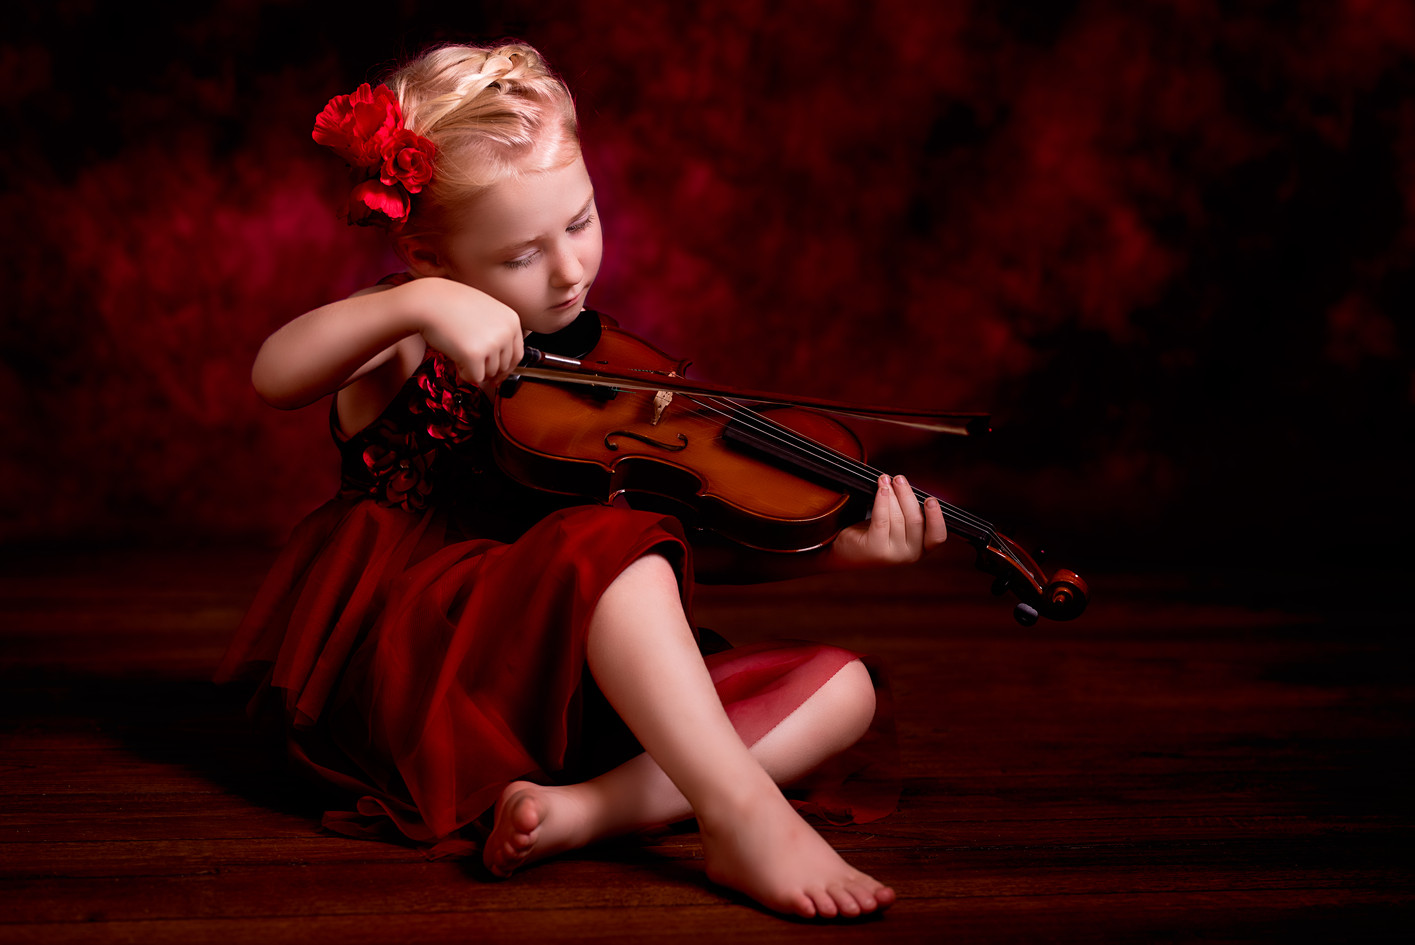 Artistic Photograph of Child playing a violin